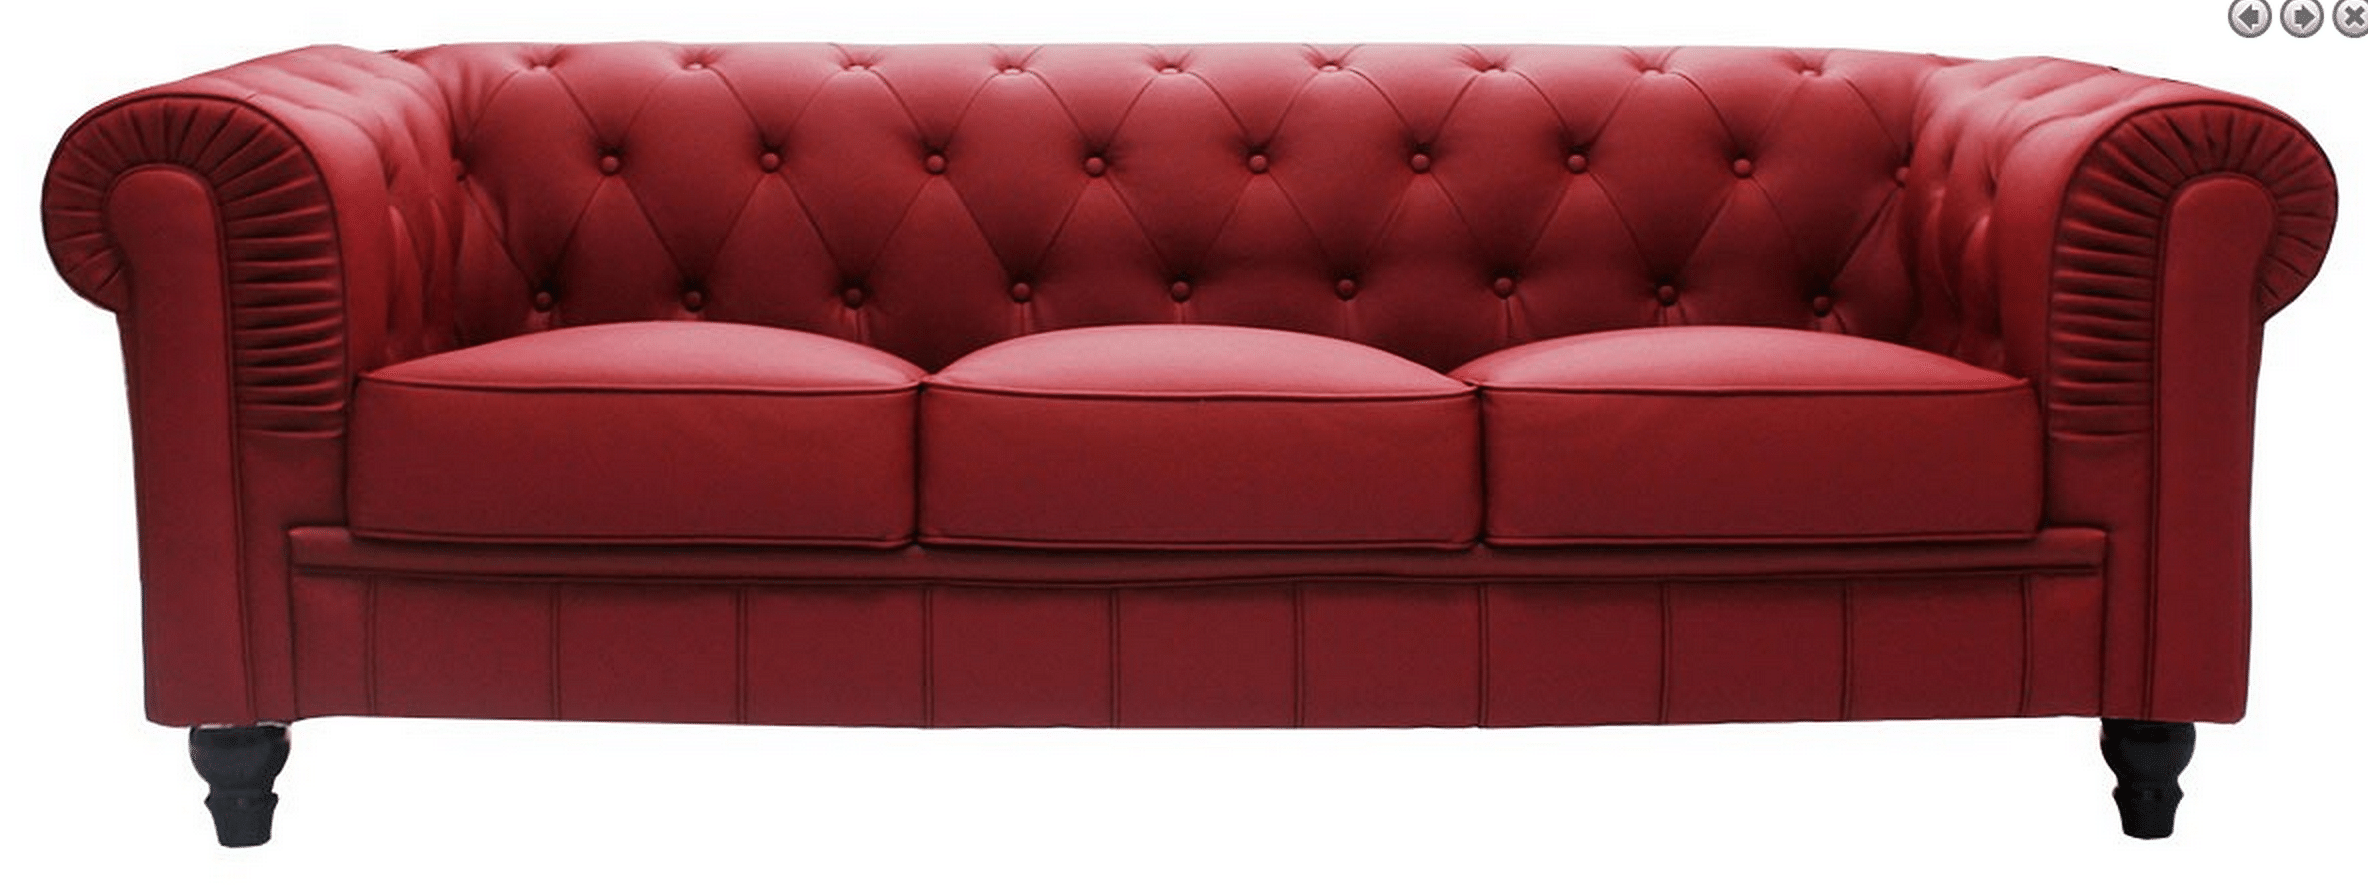 10 sofas under $1000 that you can buy online | Home  Decor Singapore